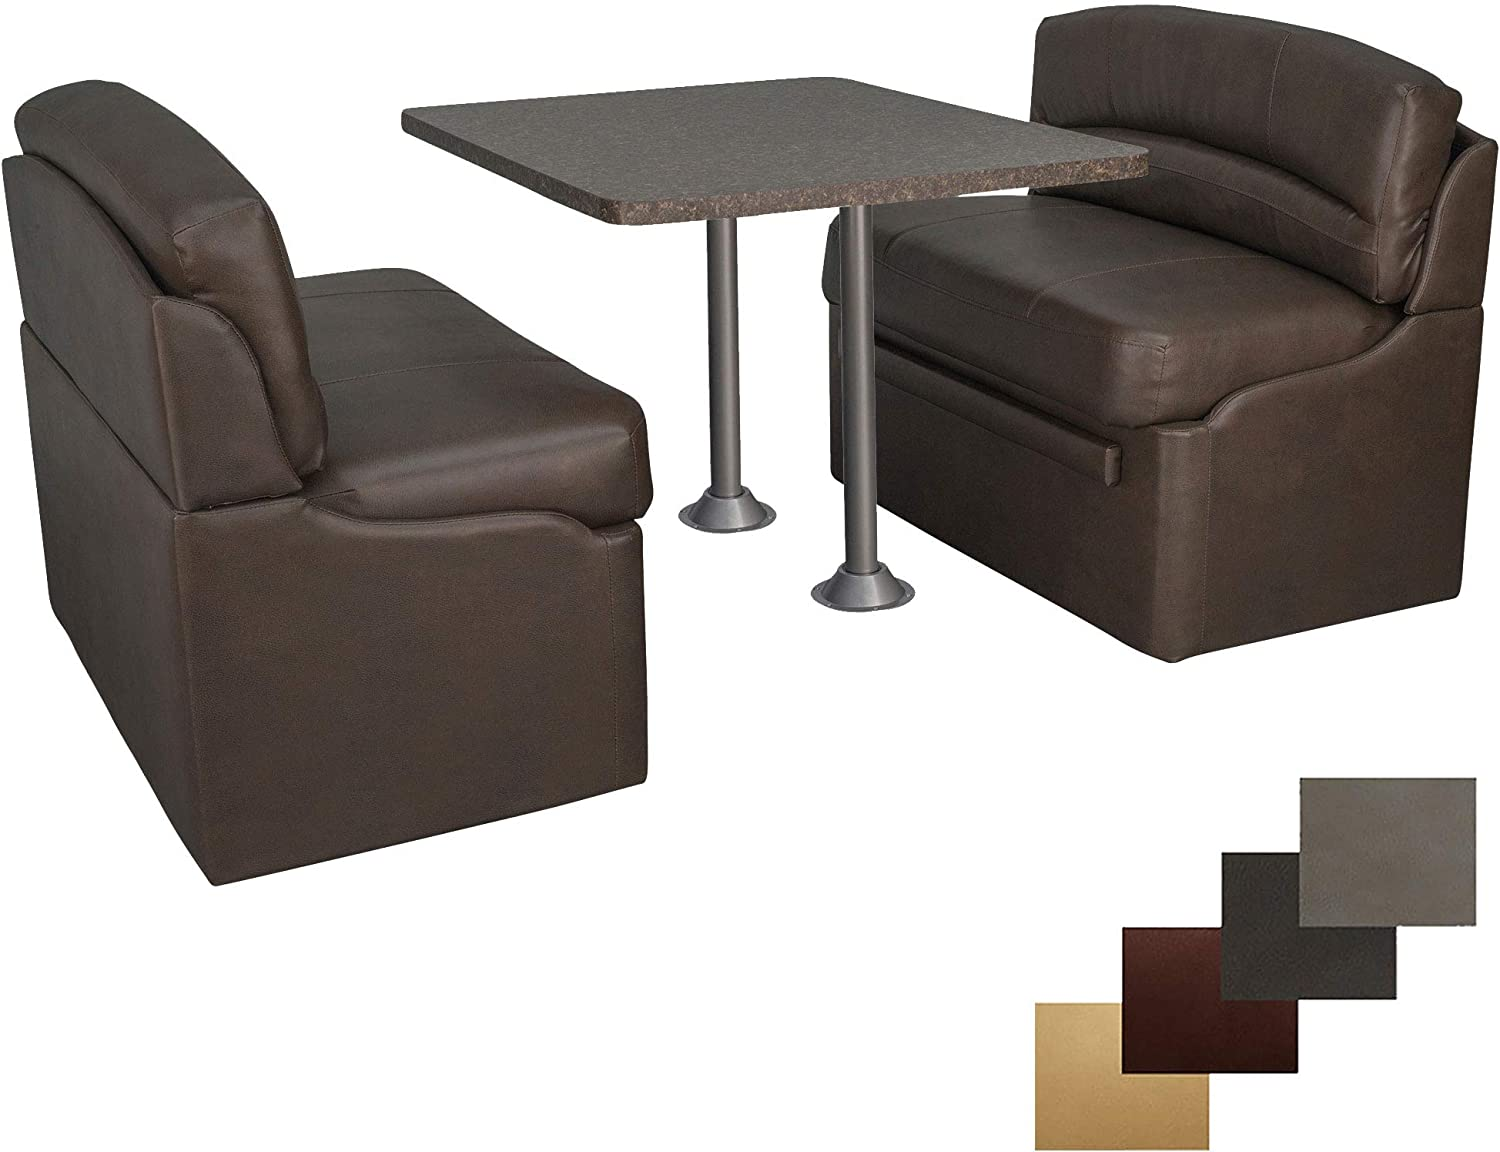 RecPro New 38 RV Dinette Booth Set with Table and 2 Surface Mount Legs Two Dinette Booths Granite Chocolate, Chestnut